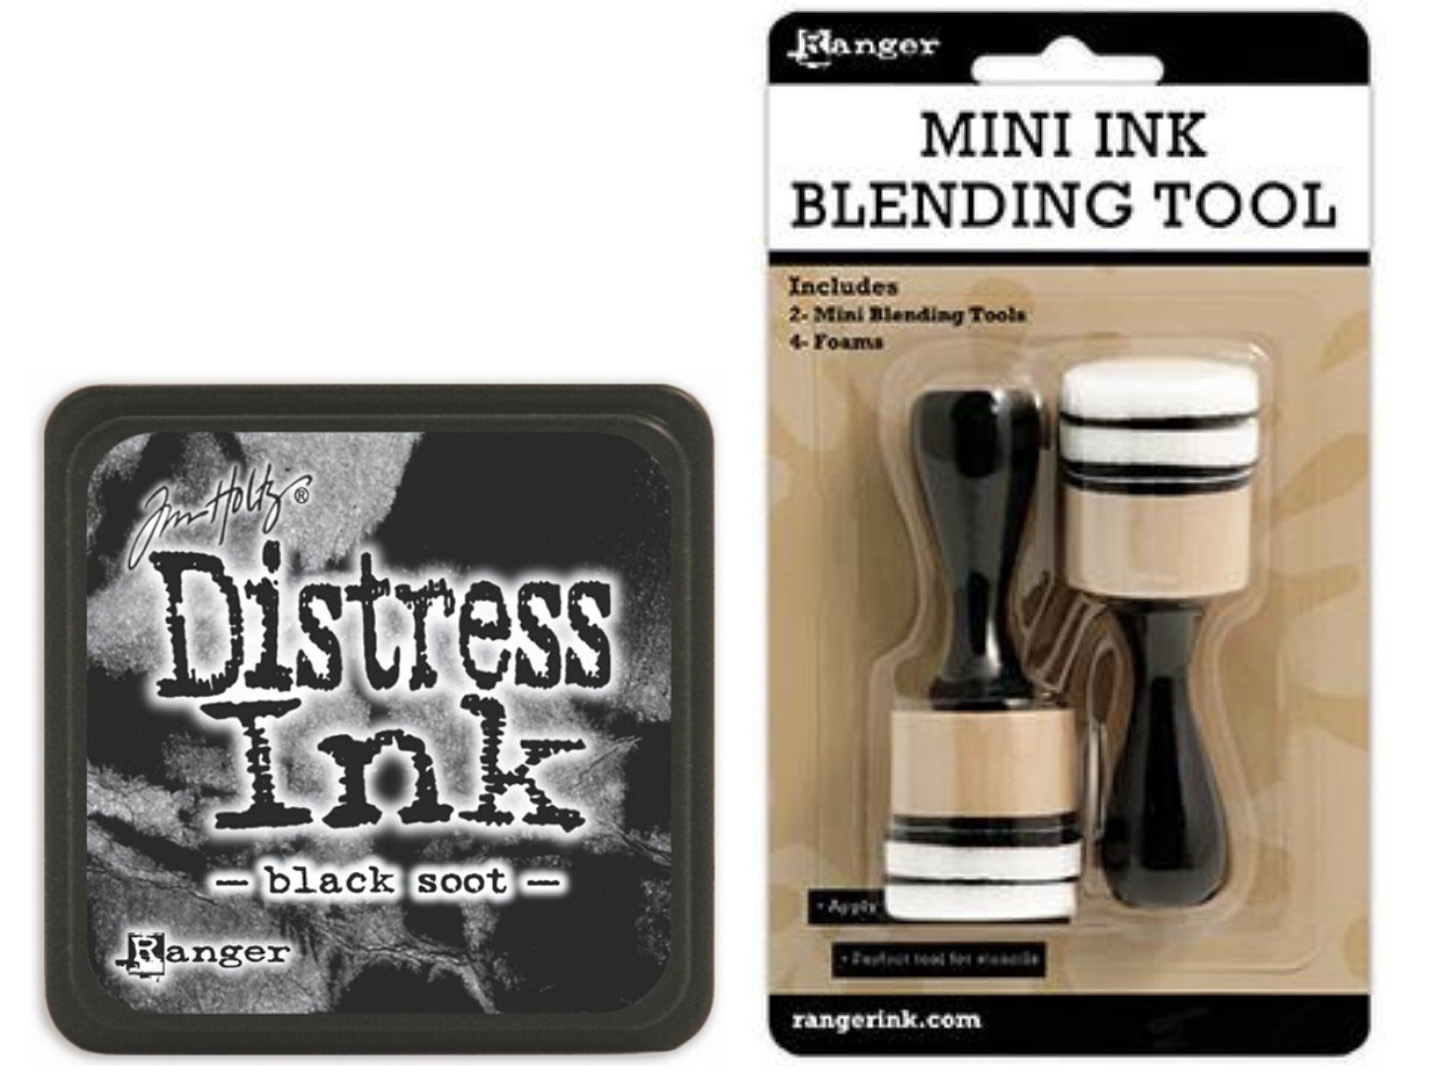 Ranger Black Soot Destress ink and mini blending tool